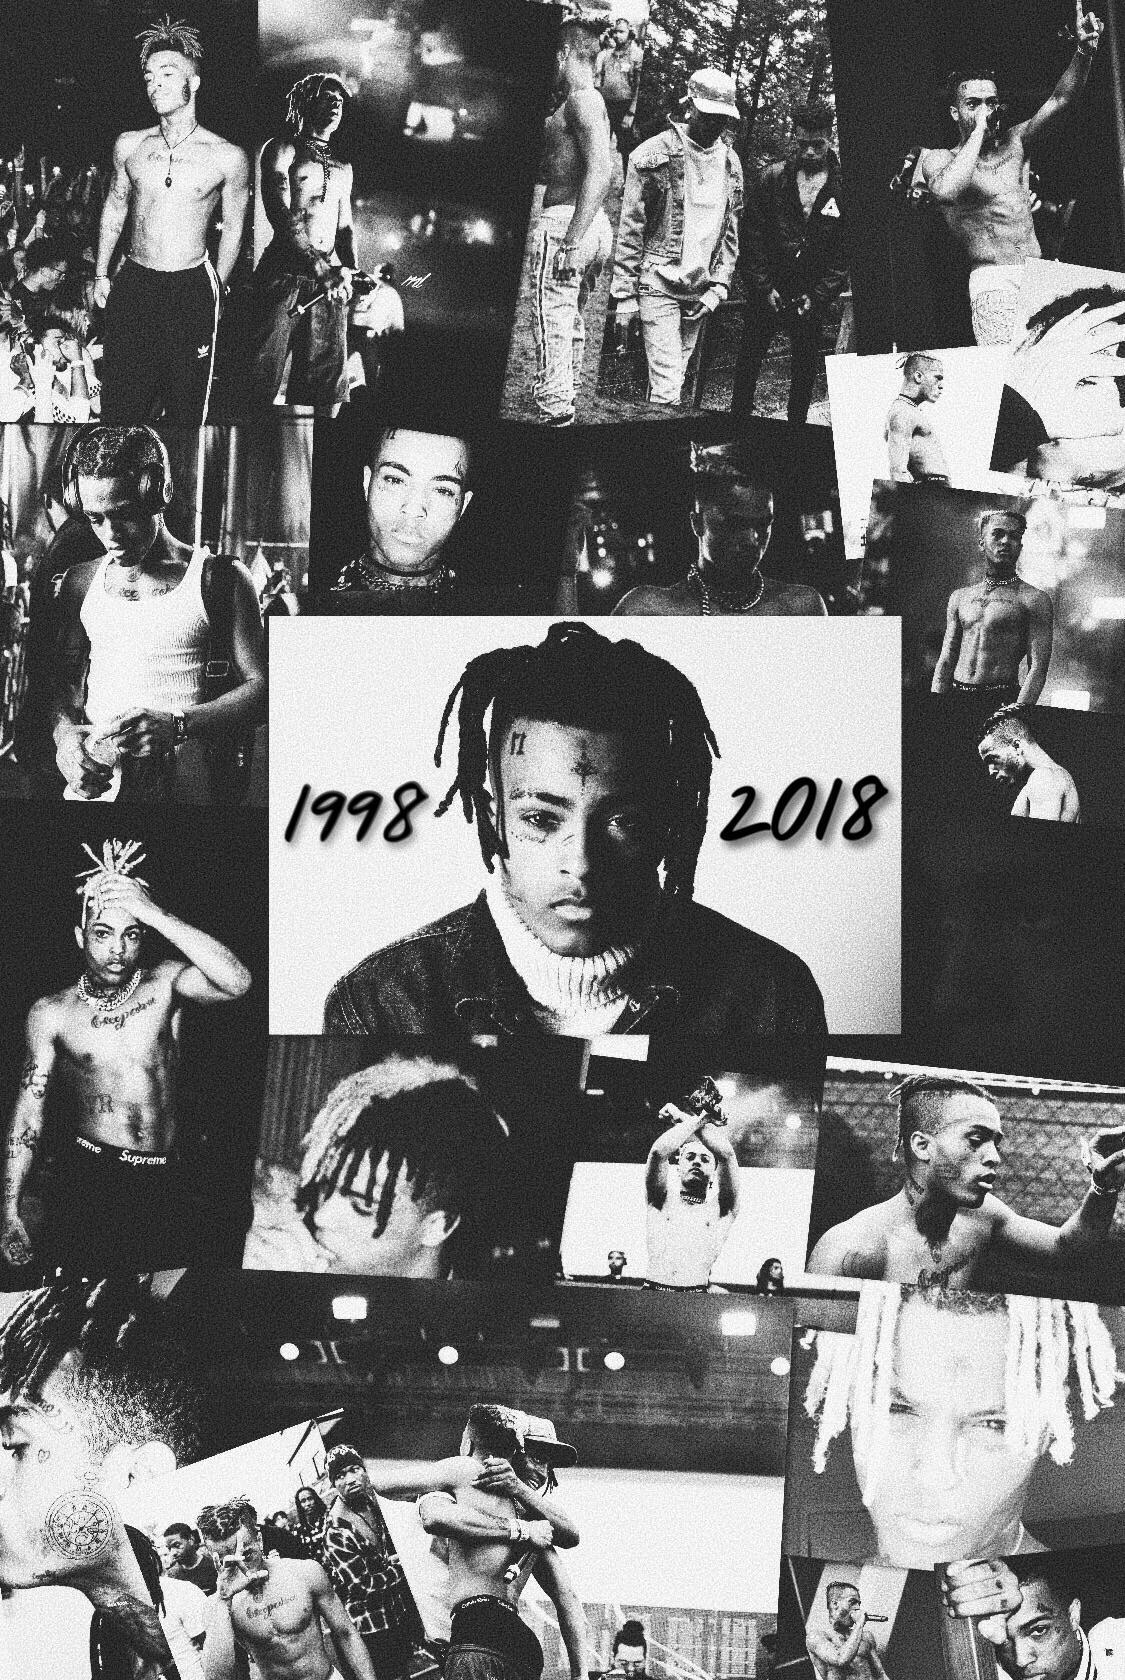 Here's an iPhone wallpaper I made in case anyone likes it : XXXTENTACION